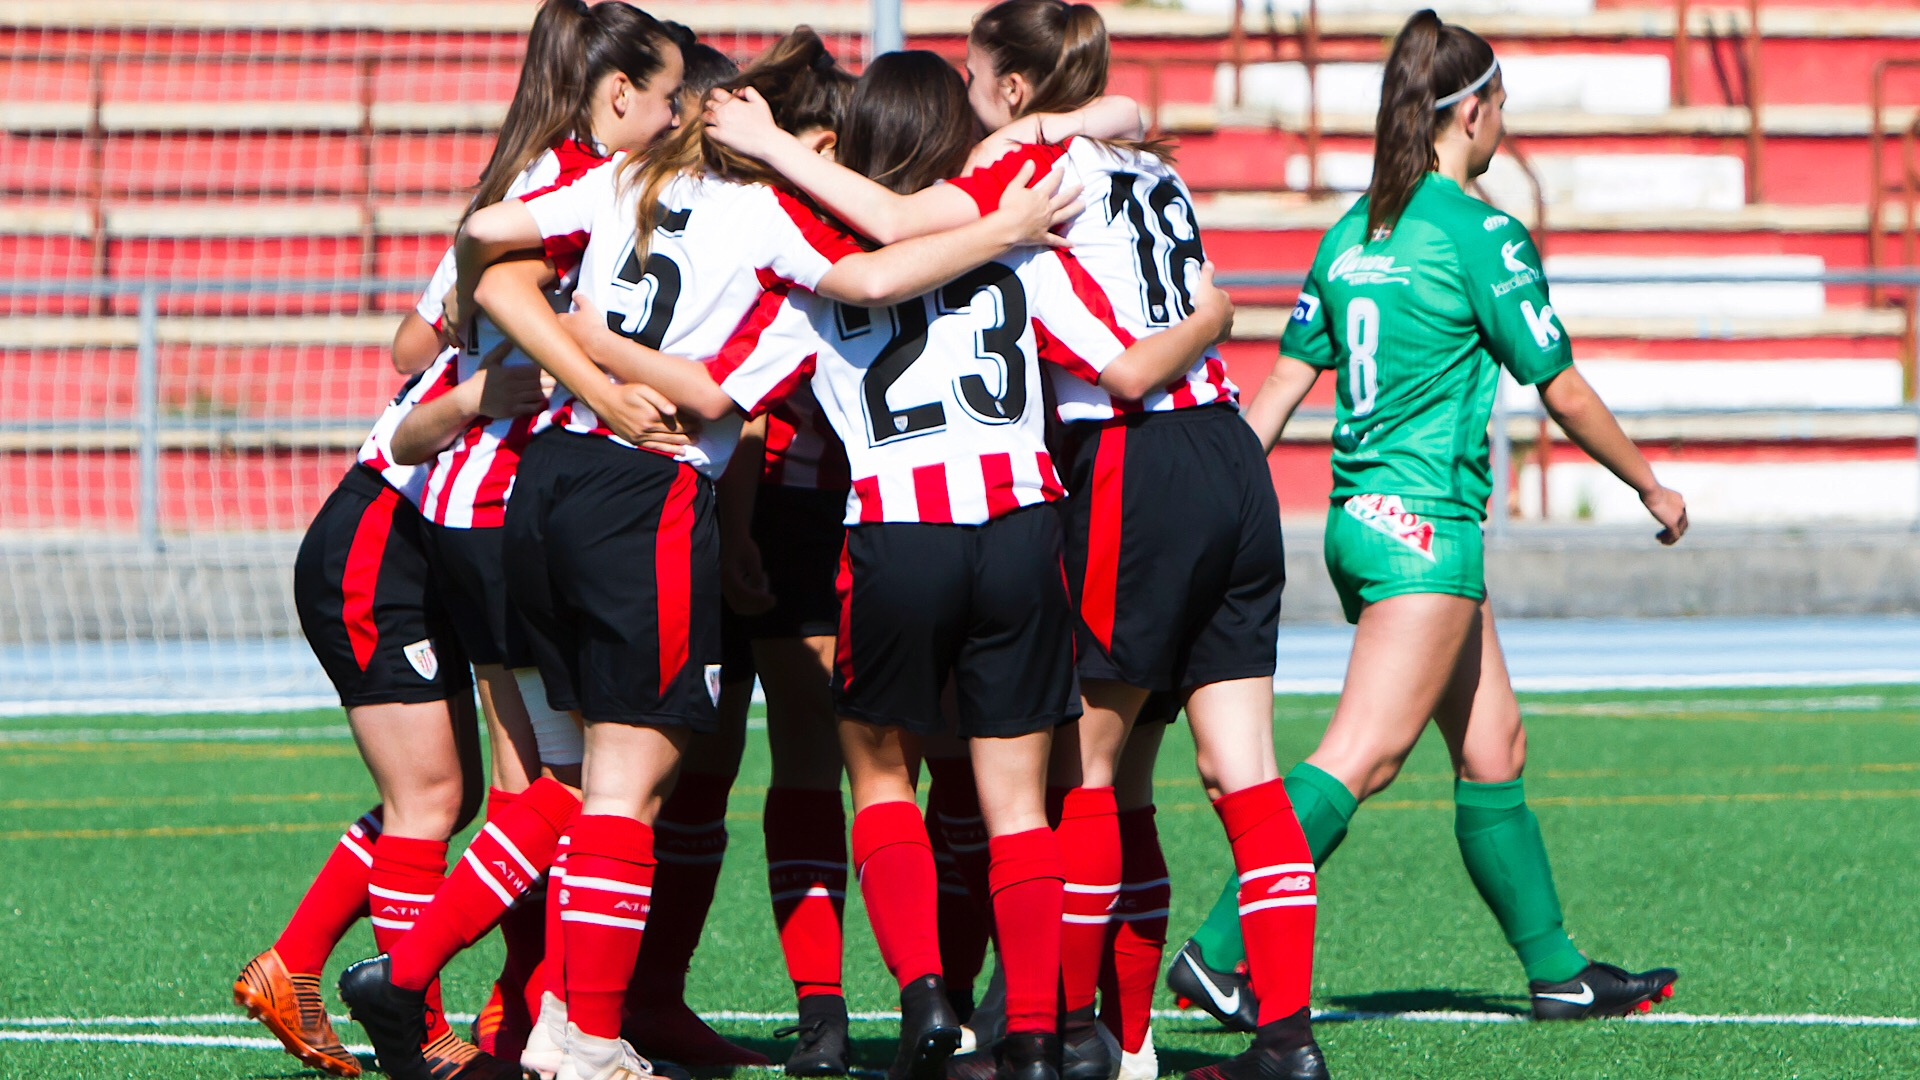 El Athletic Club B, campeón de la Copa Vasca Femenina